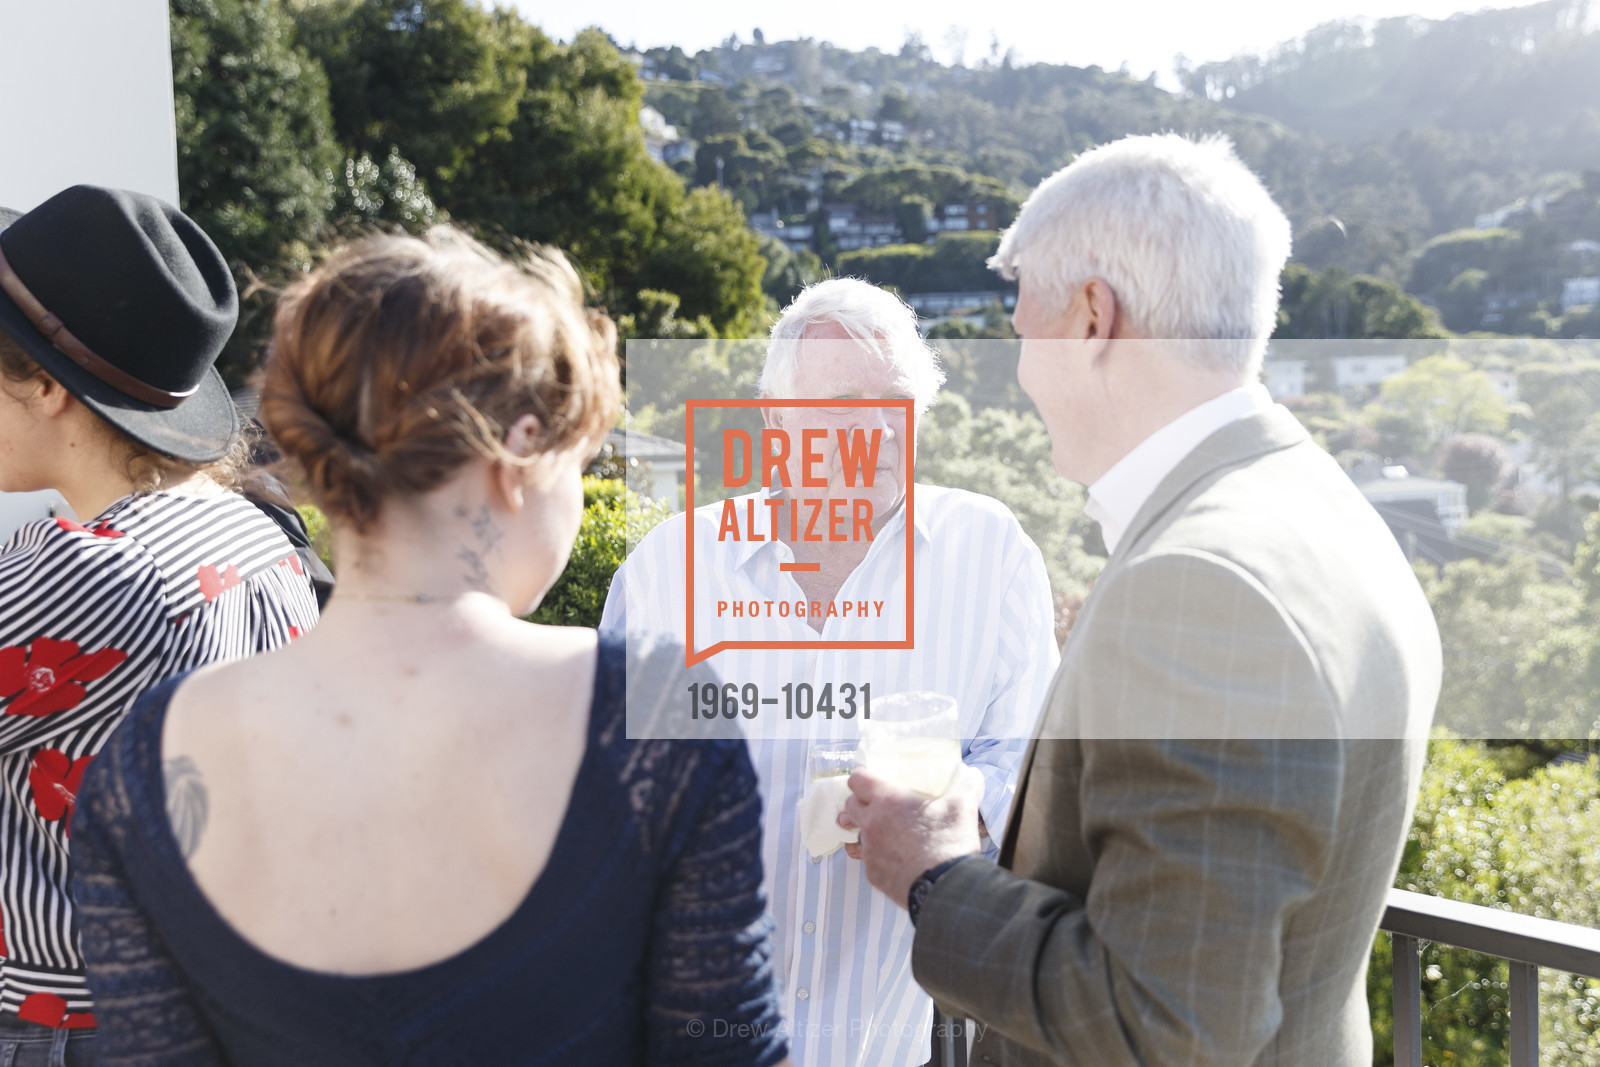 Alton Irby, Liz and Dan's Engagement Party, Private Residence, April 14th, 2018,Drew Altizer, Drew Altizer Photography, full-service agency, private events, San Francisco photographer, photographer california